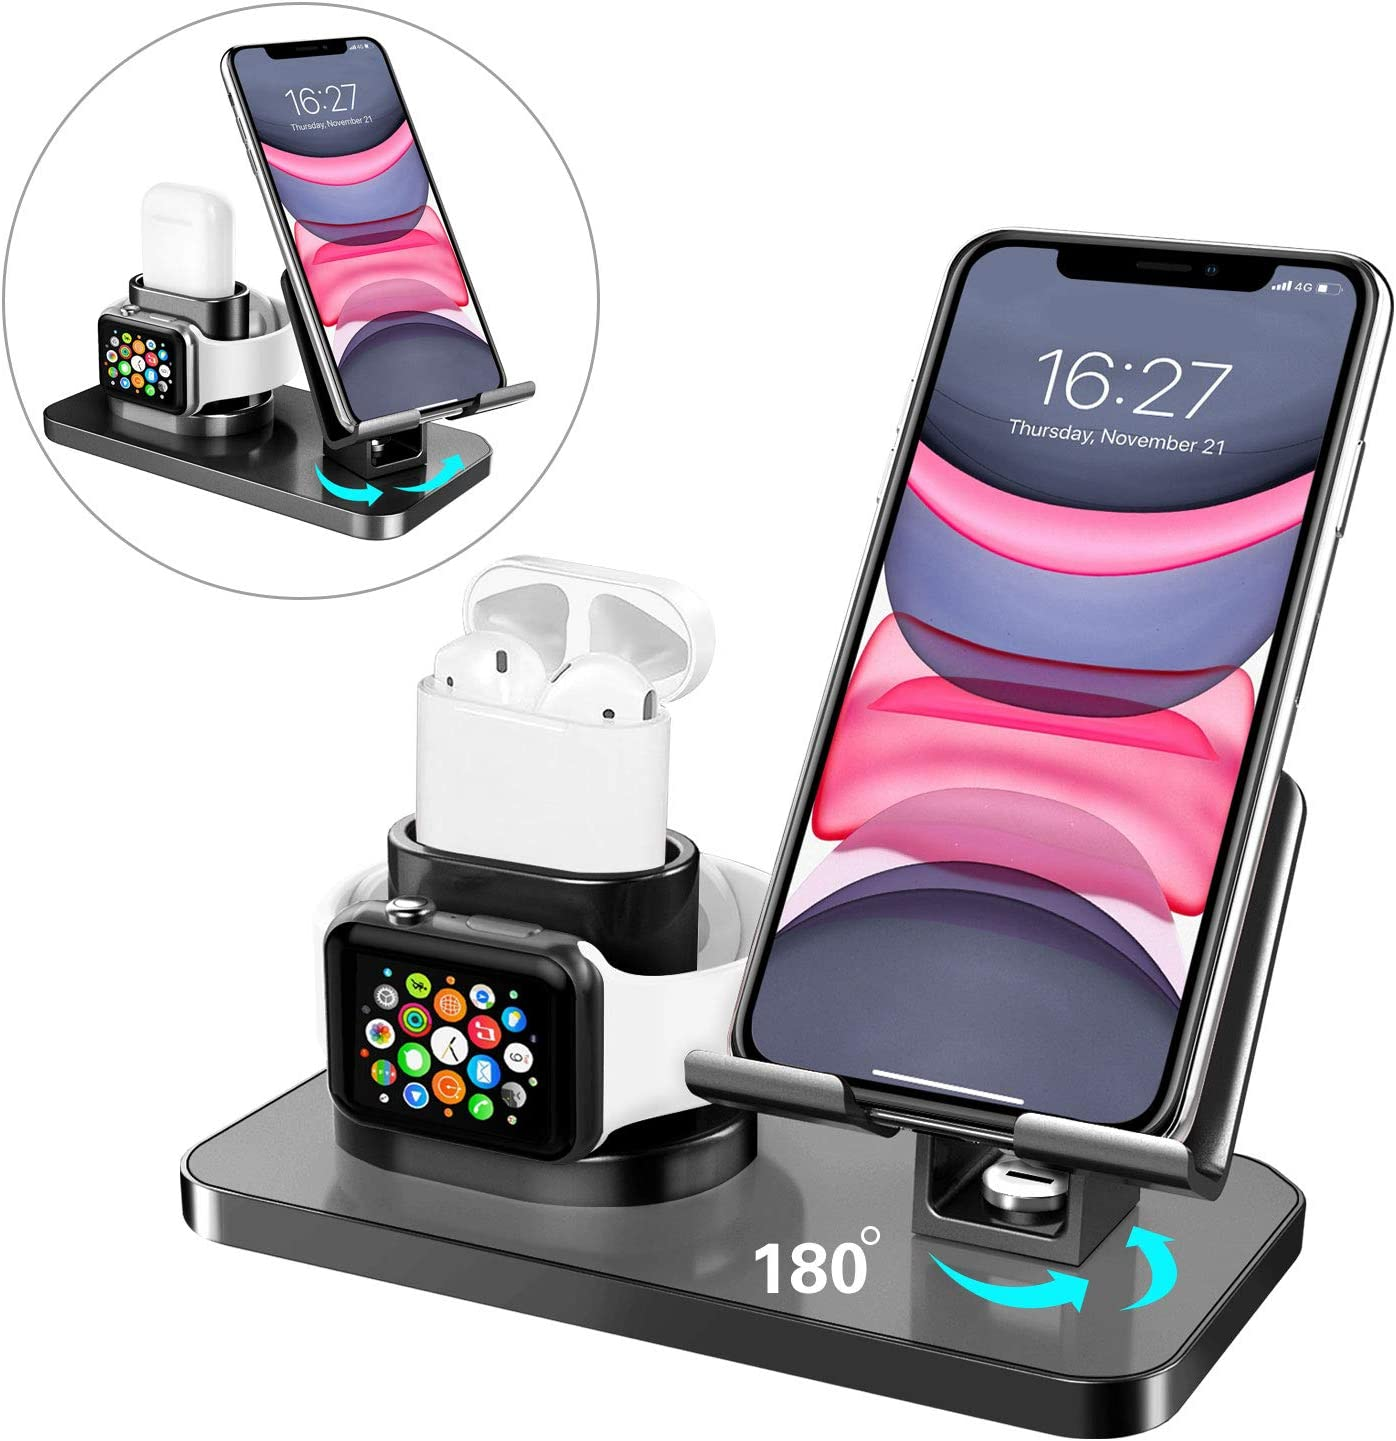 BENTOBEN 3 in 1 Charging Stand for Apple Watch(iWatch Series 5/4/3/2/1), Airpods 2/1, iPad Stand, iPhone Stand(11/XS MAX/XR/XS/8/8 Plus/7/7 Plus/6/6 Plus), Tablet Stand(Original Cables Required),Black